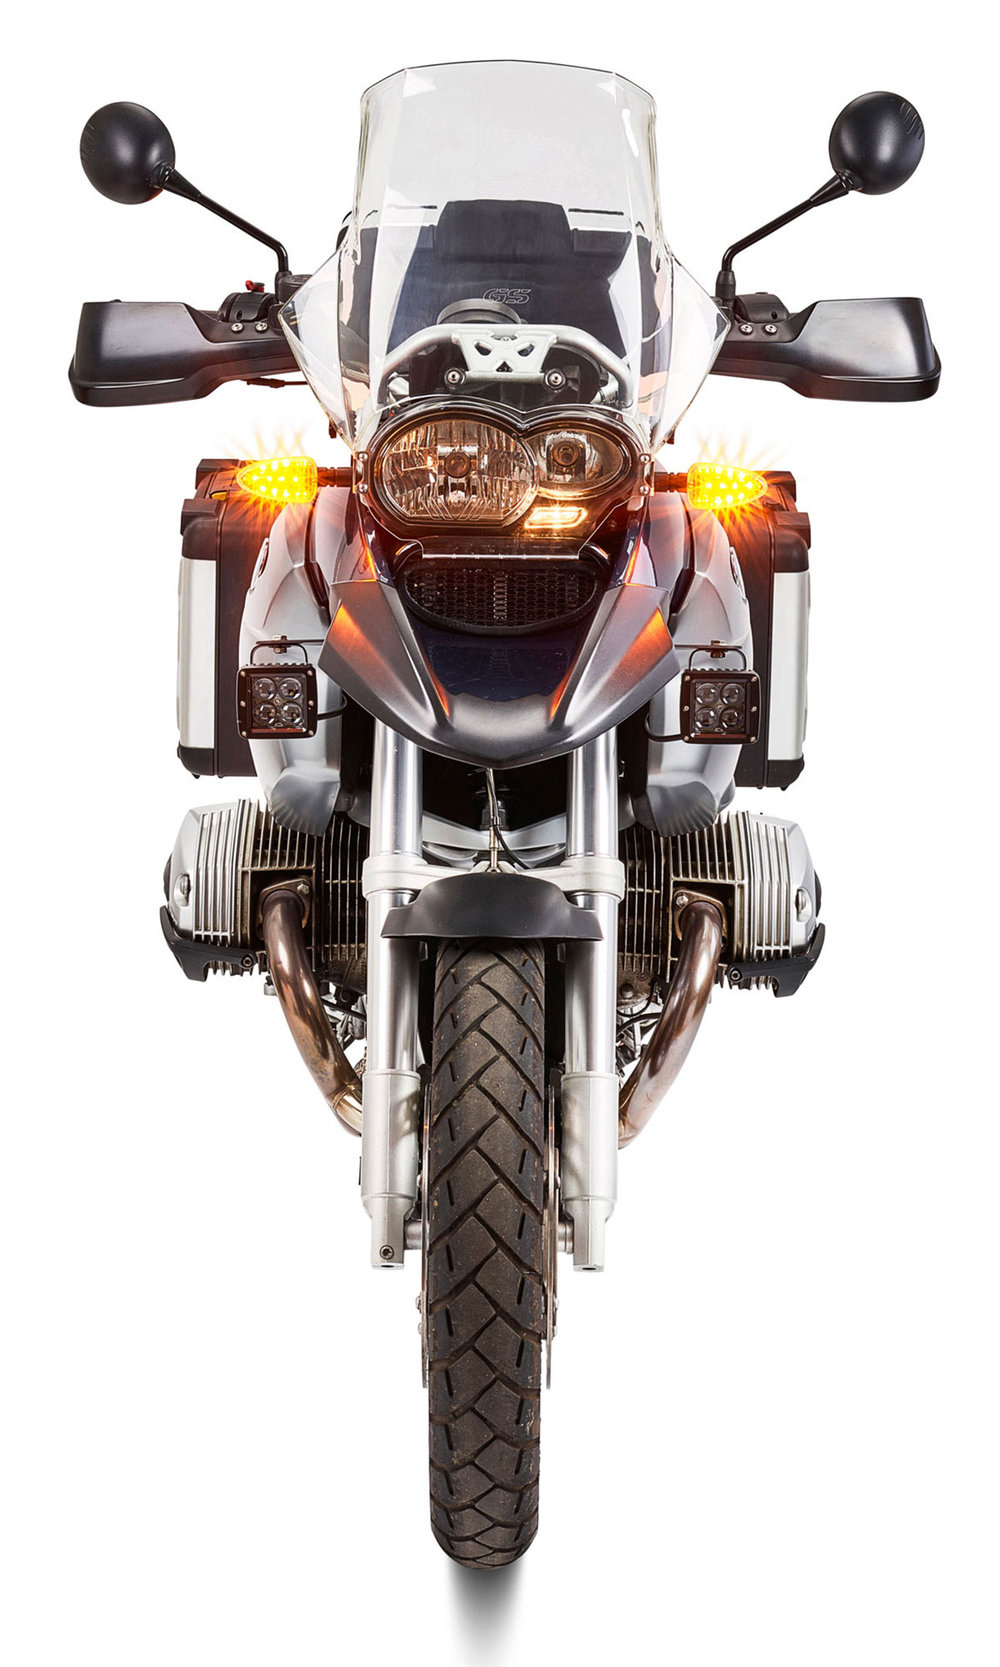 Ultrabrights Legacy I Extreme for earlier BMW 'R, F, G, K and HP' series - For earlier BMW bikes 2000 to 2014